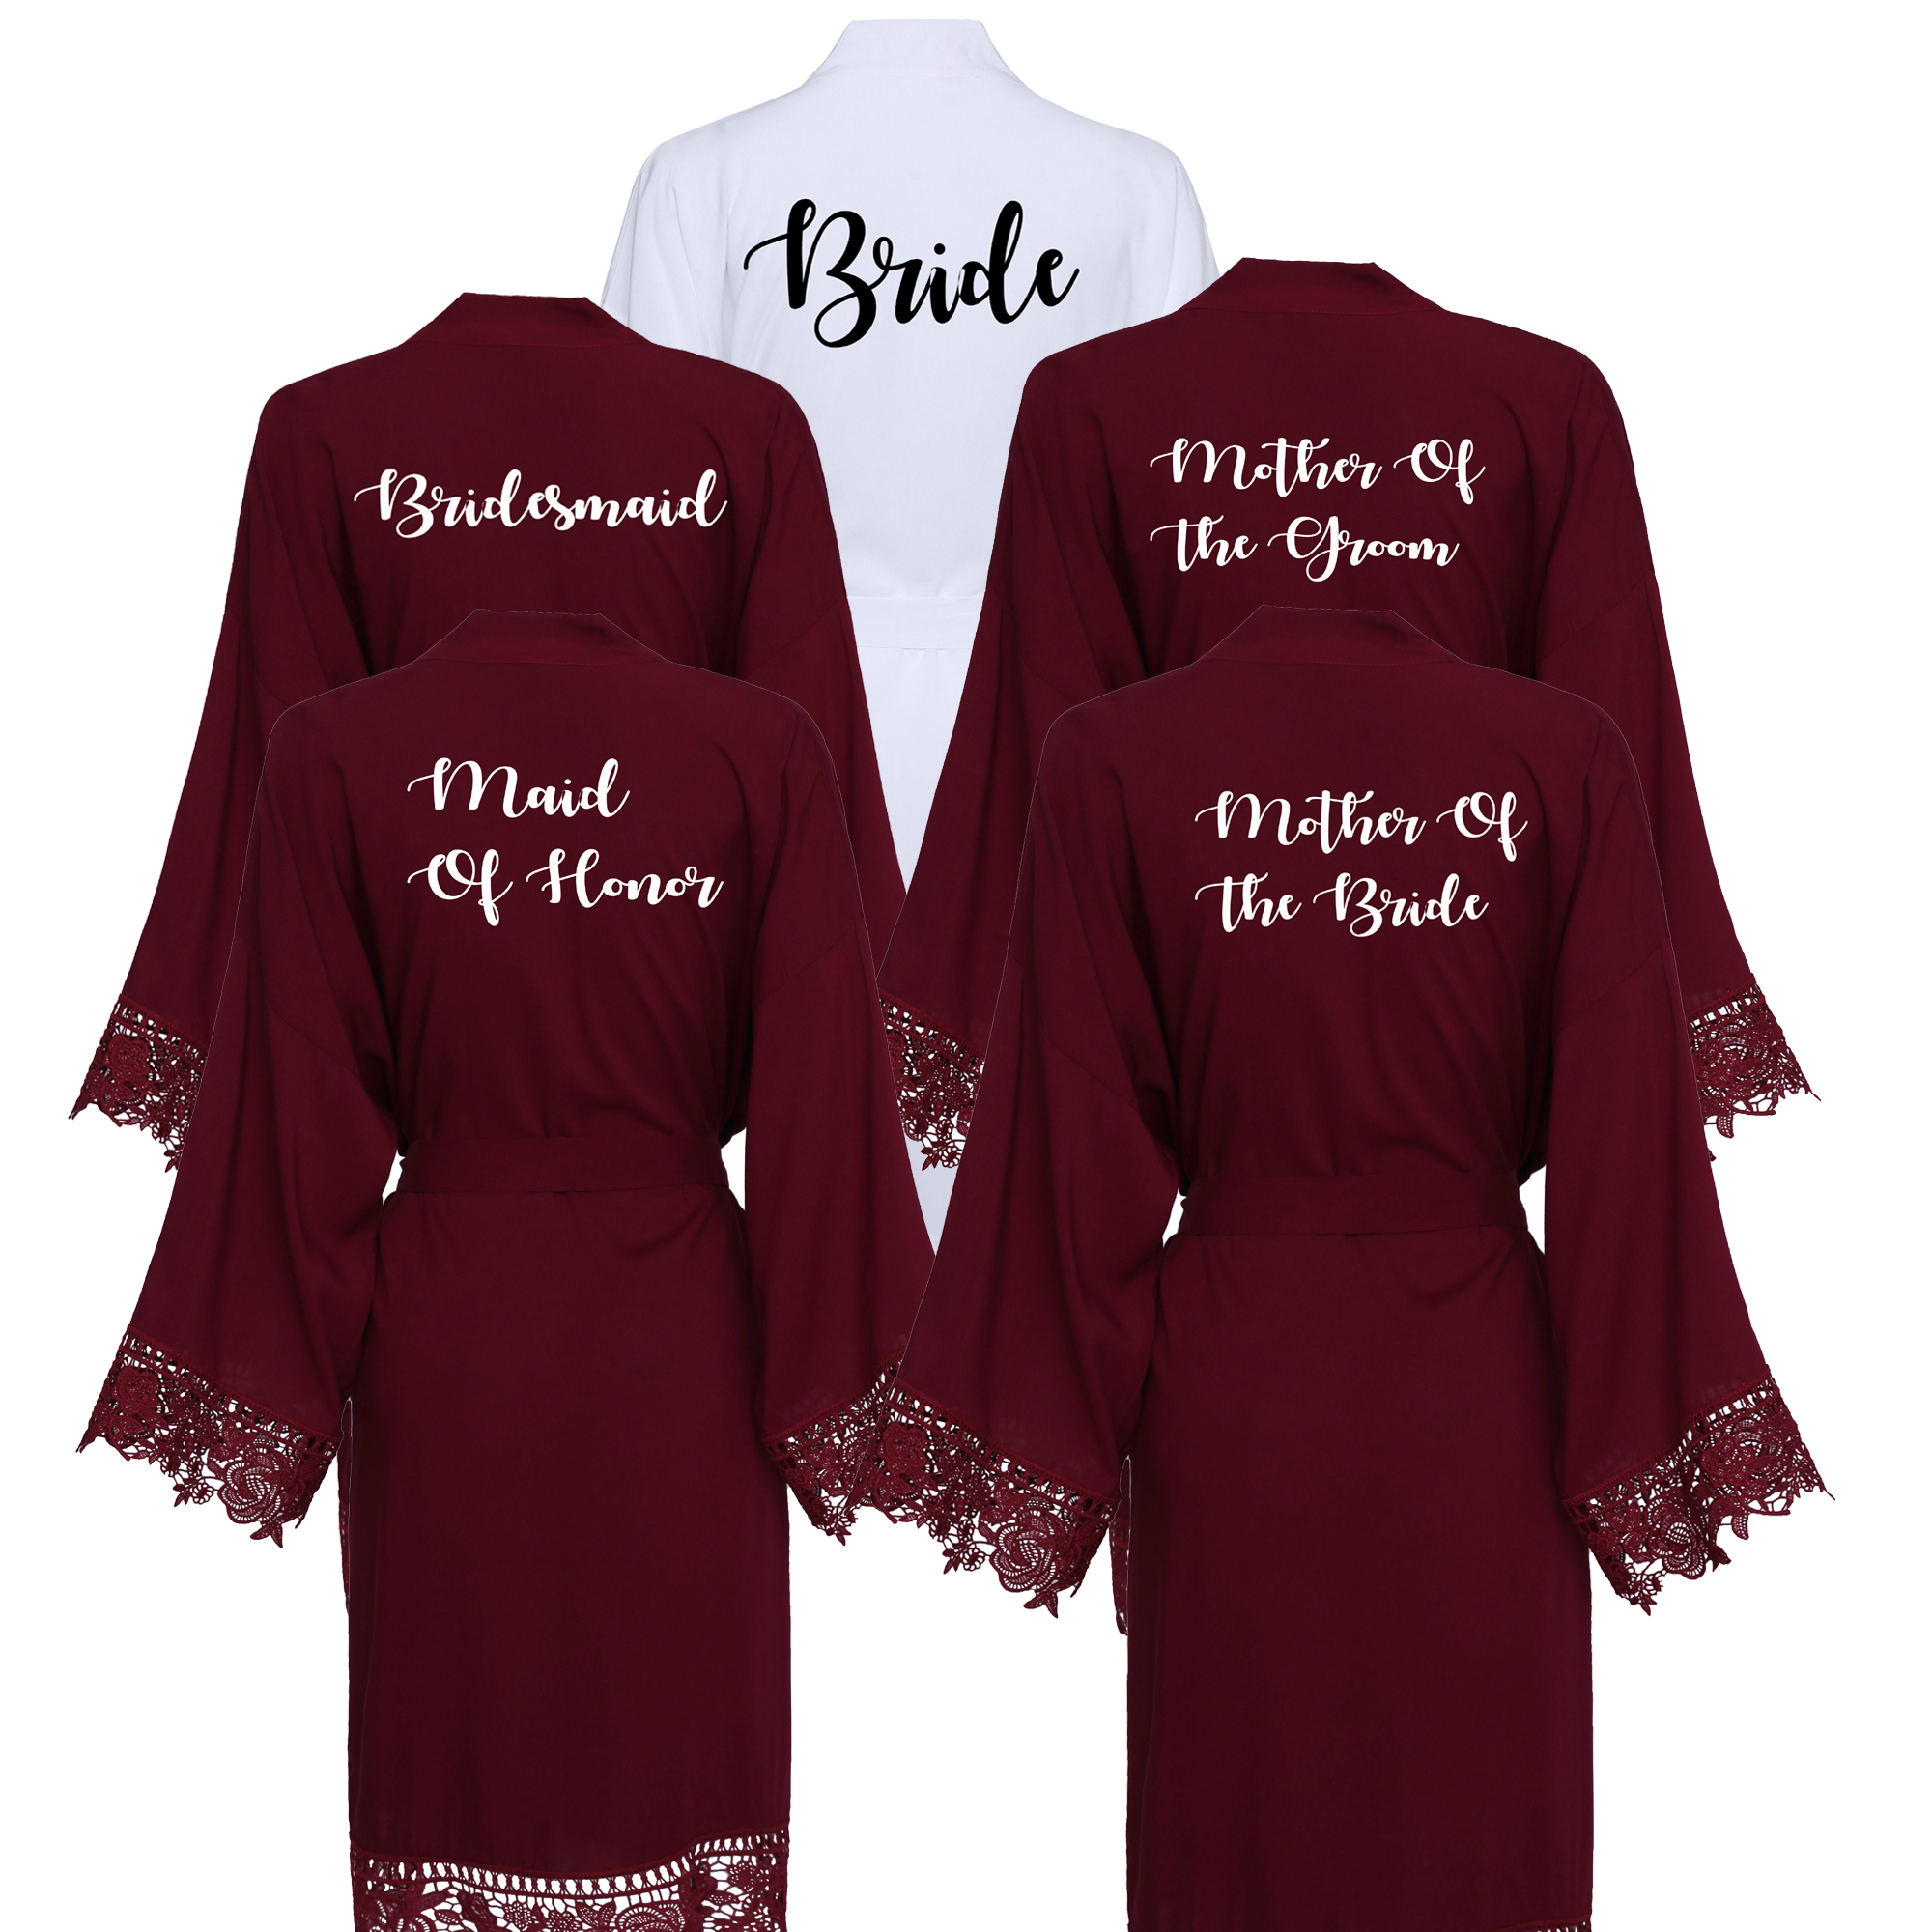 YUXINBRIDAL Burgundy Bridesmaid Bride Robes Cotton Kimono Robes With Lace Trim Women Wedding Bridal Robe Short Belt